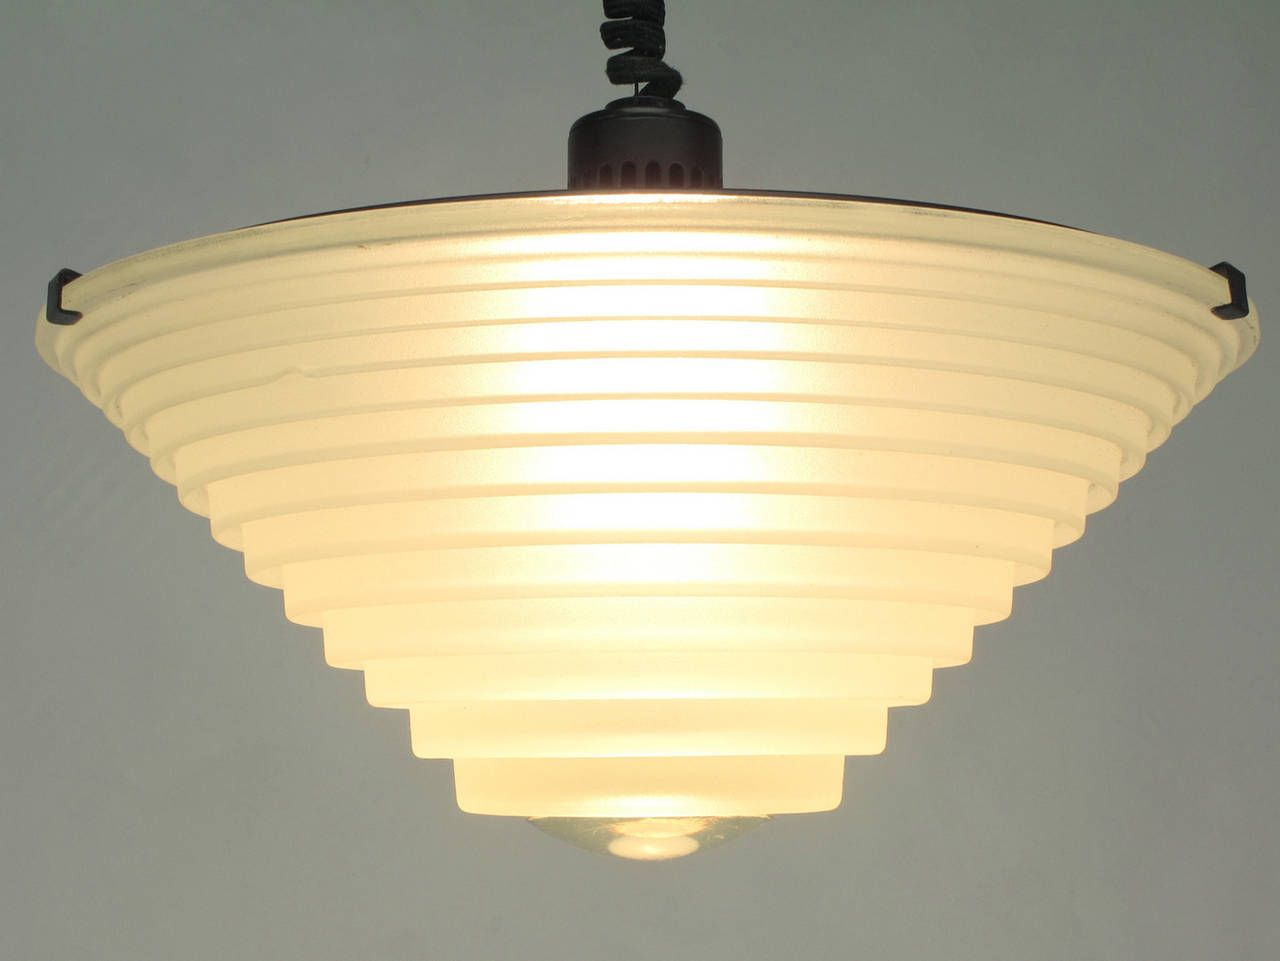 Pair Of Angelo Mangiarotti Egina Pendants For Artemide SpA